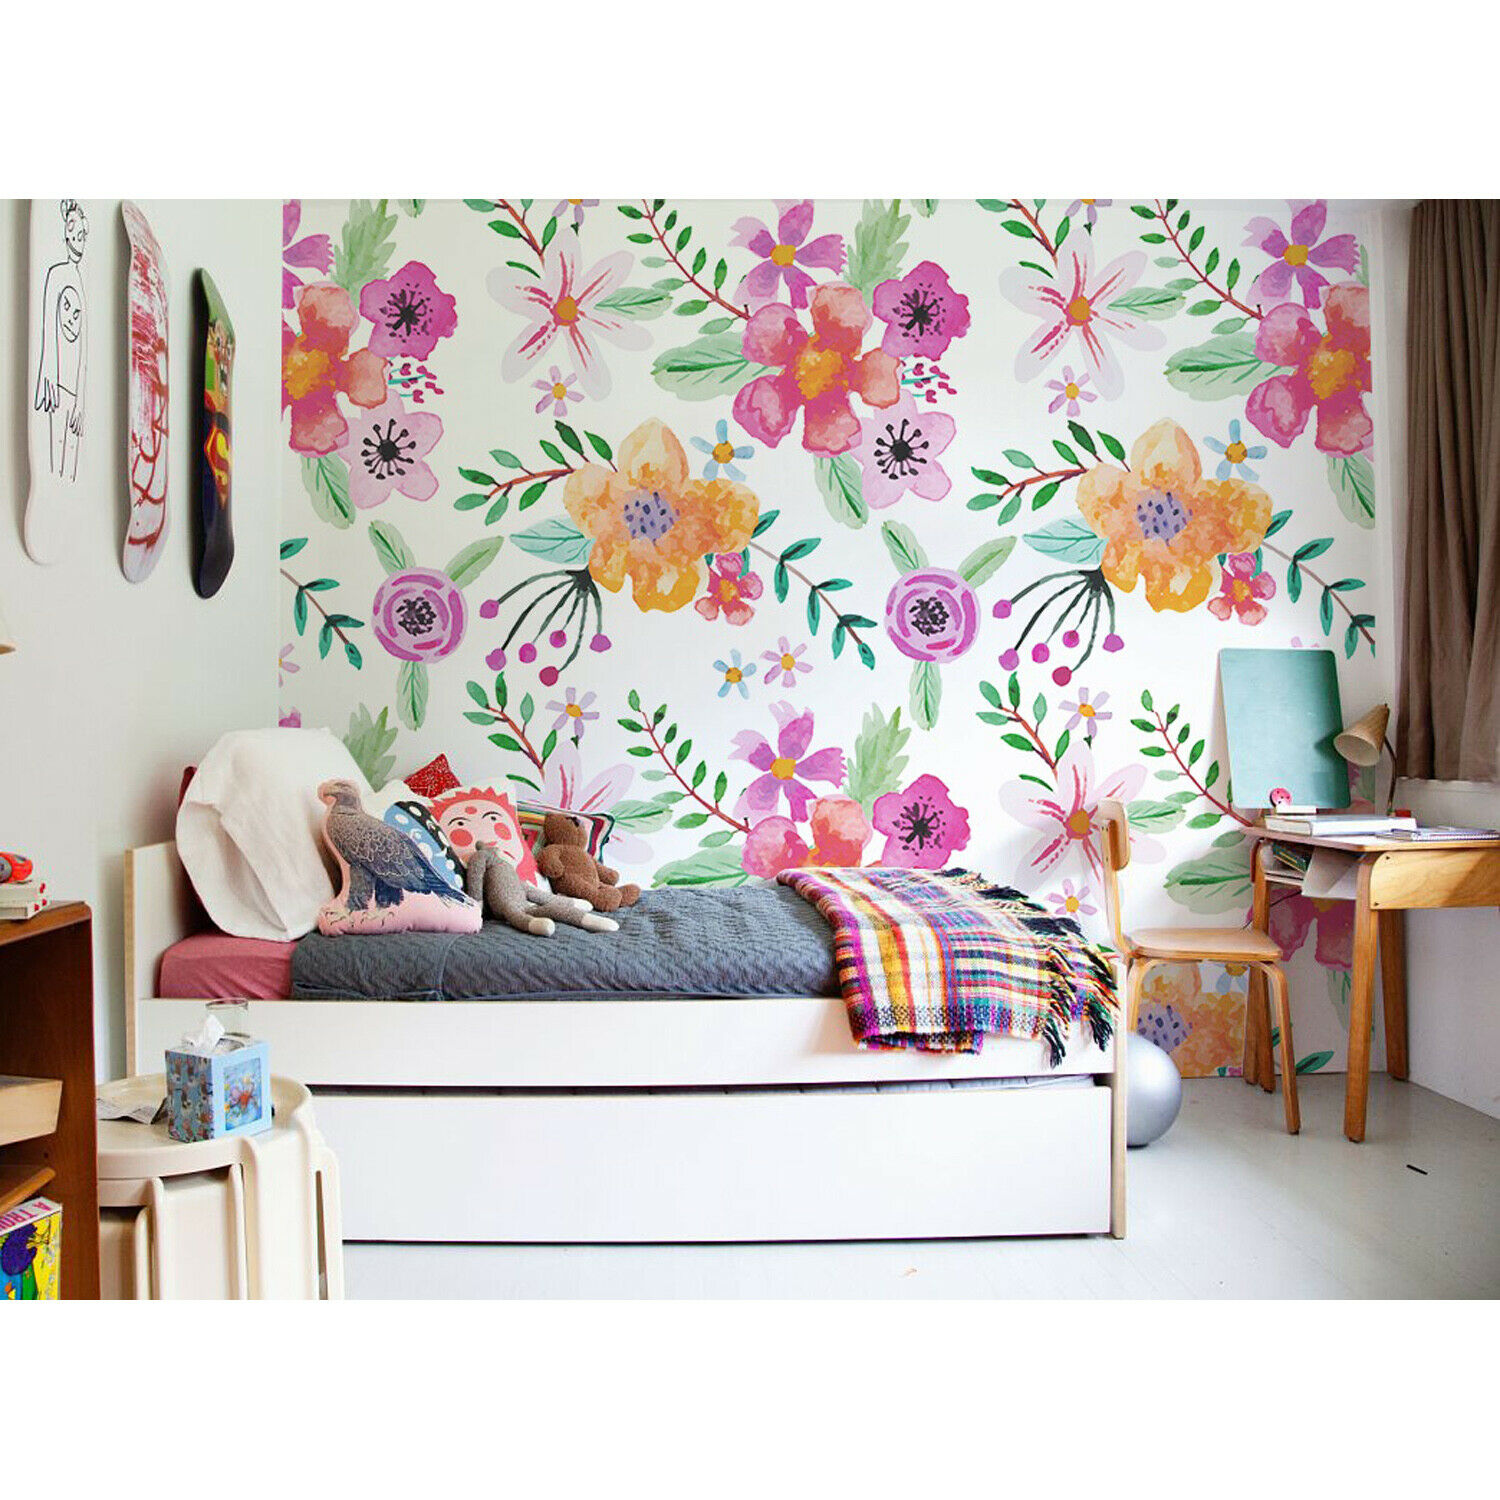 Alternative Floral Removable Farbeful Botanical Drawing Wallpaper wall mural